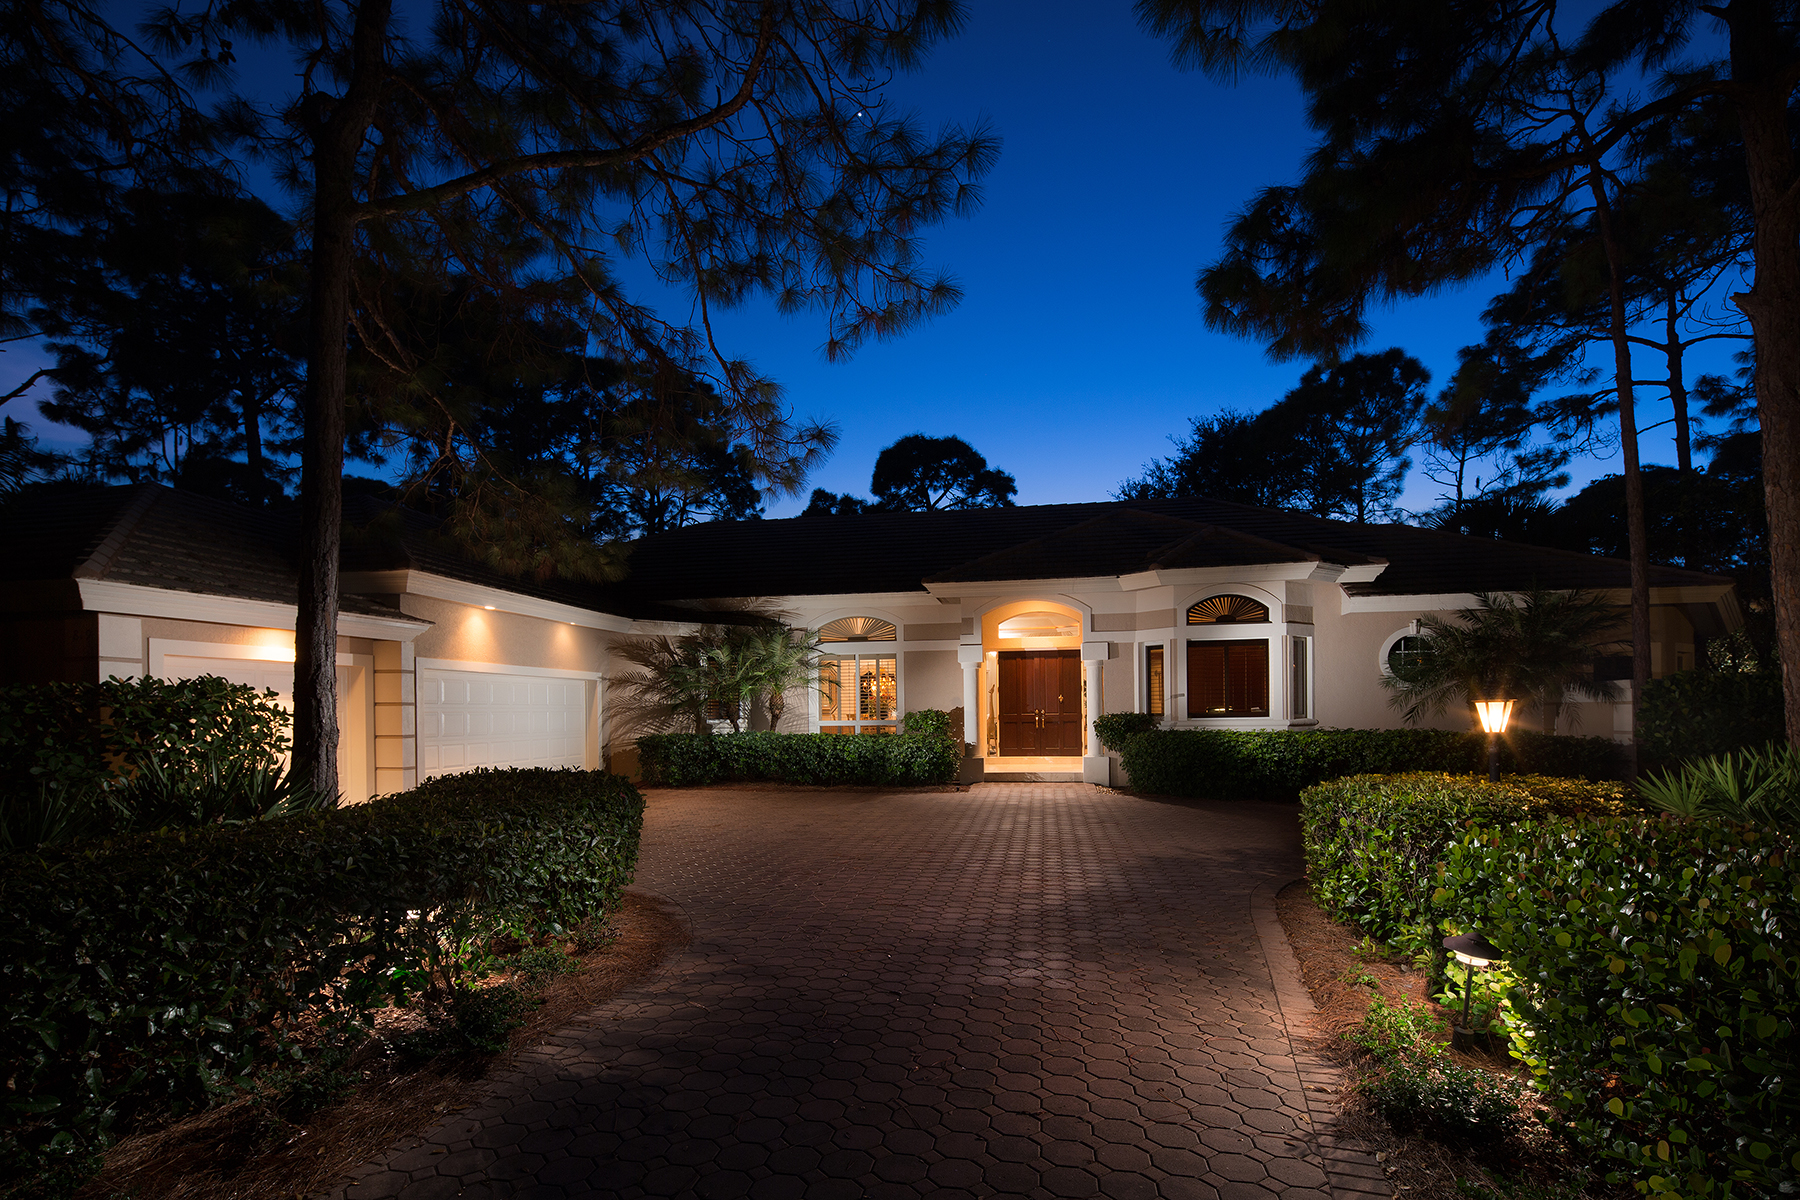 Single Family Home for Sale at COLLIERS RESERVE 819 Barcarmil Way Naples, Florida, 34110 United States